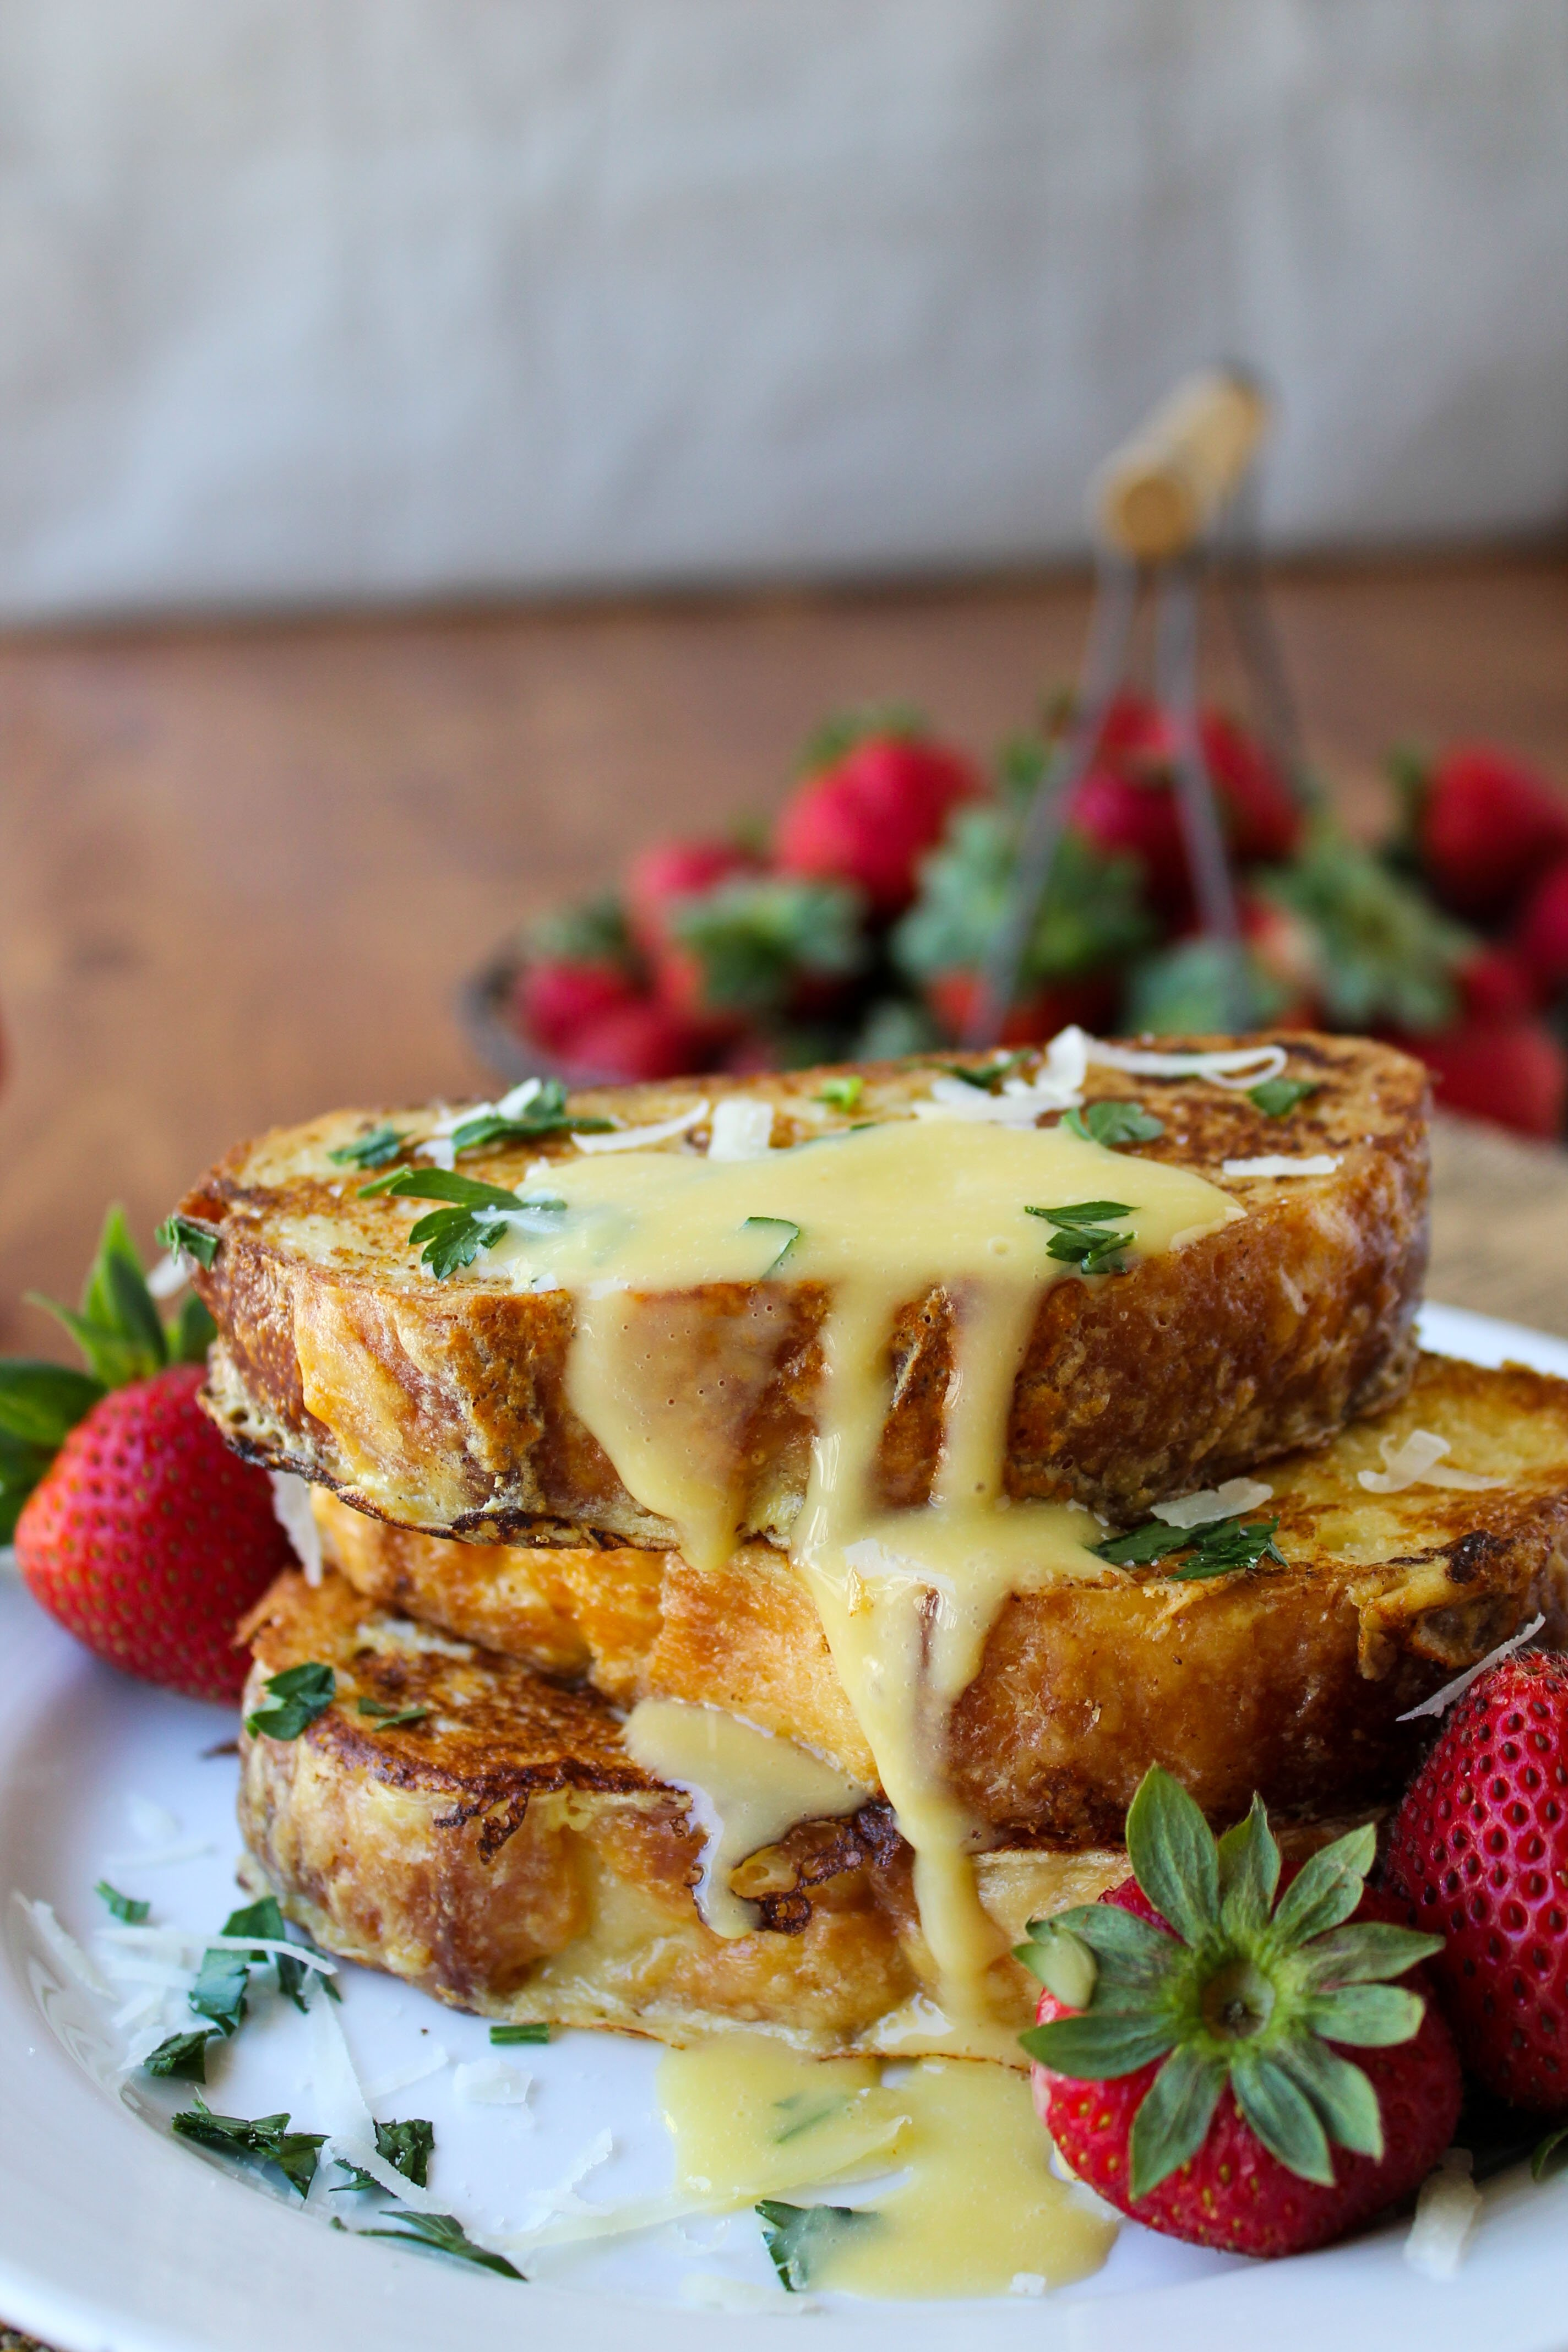 Easy Afternoon Tea Savory Bites: Recipes and Ideas - 31 Daily |Savory Dishes